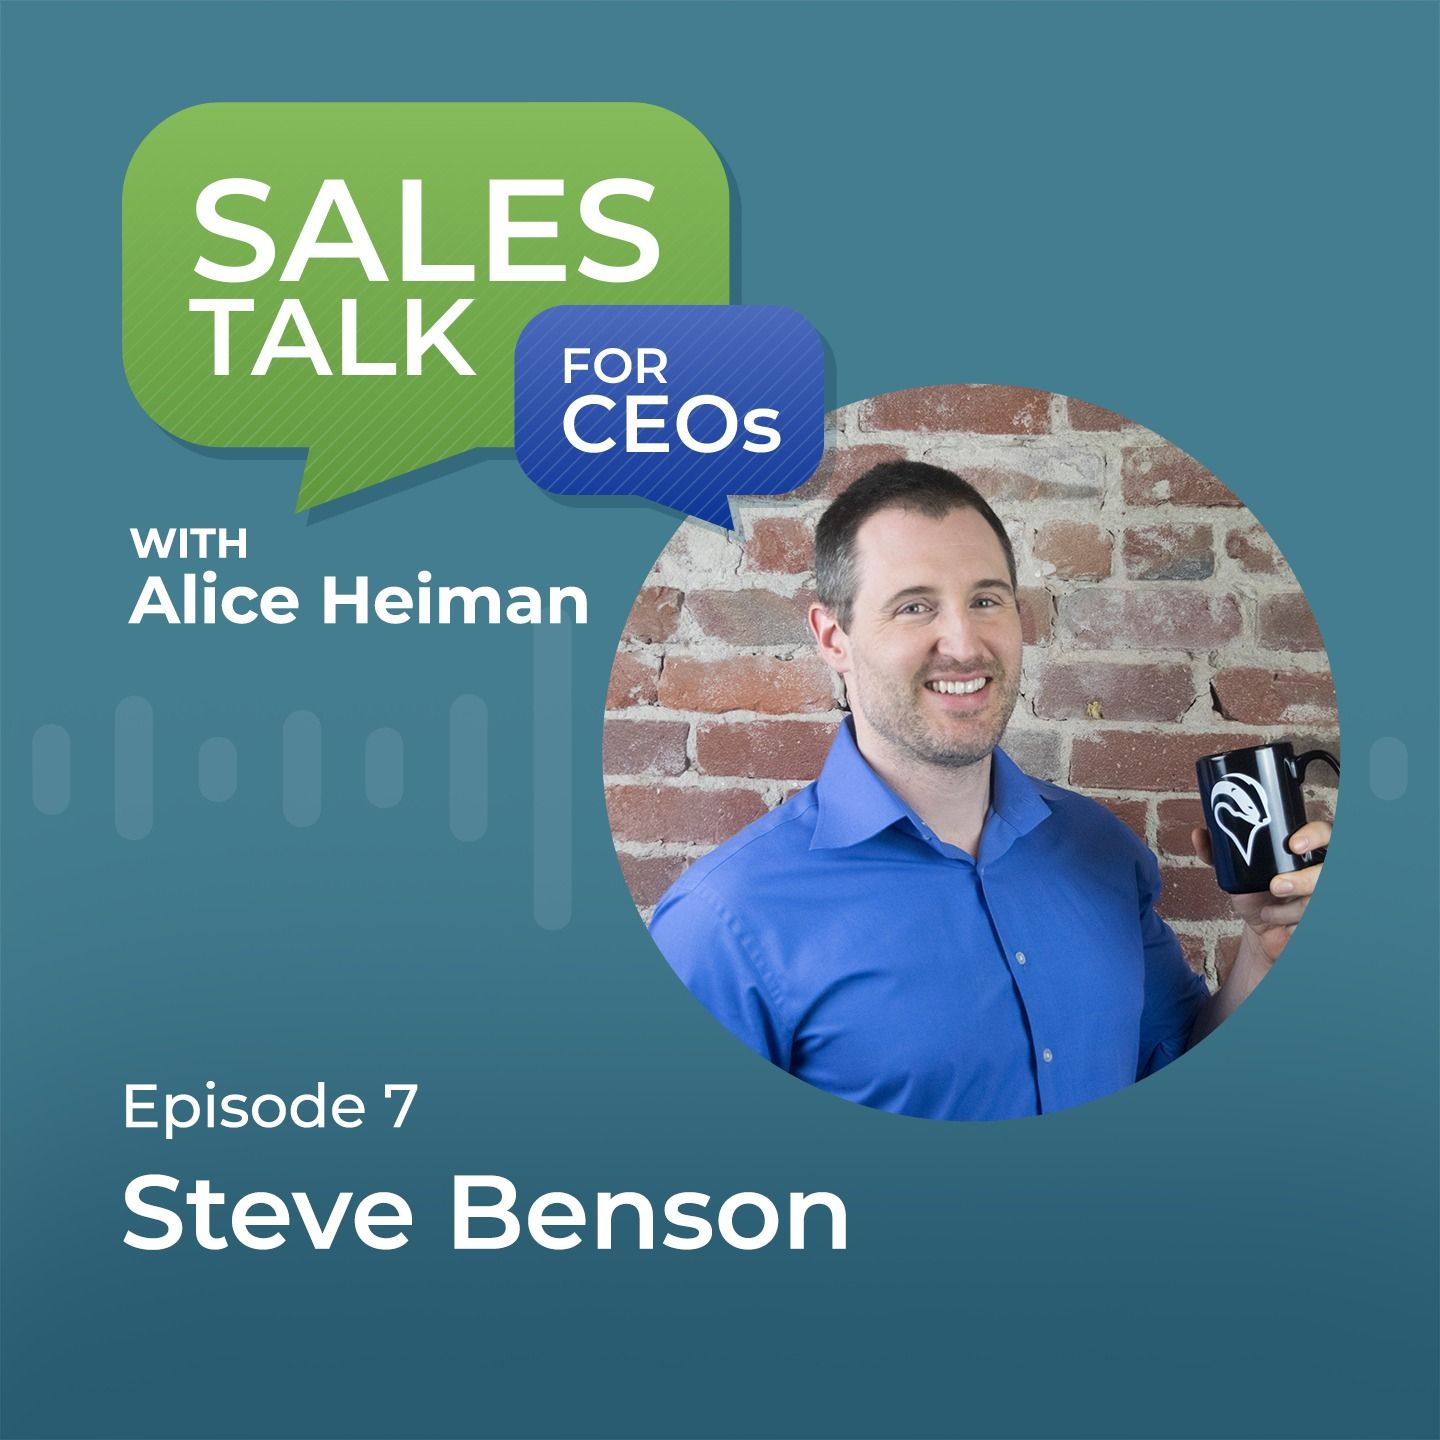 The Importance of Understanding Sales with Steve Benson